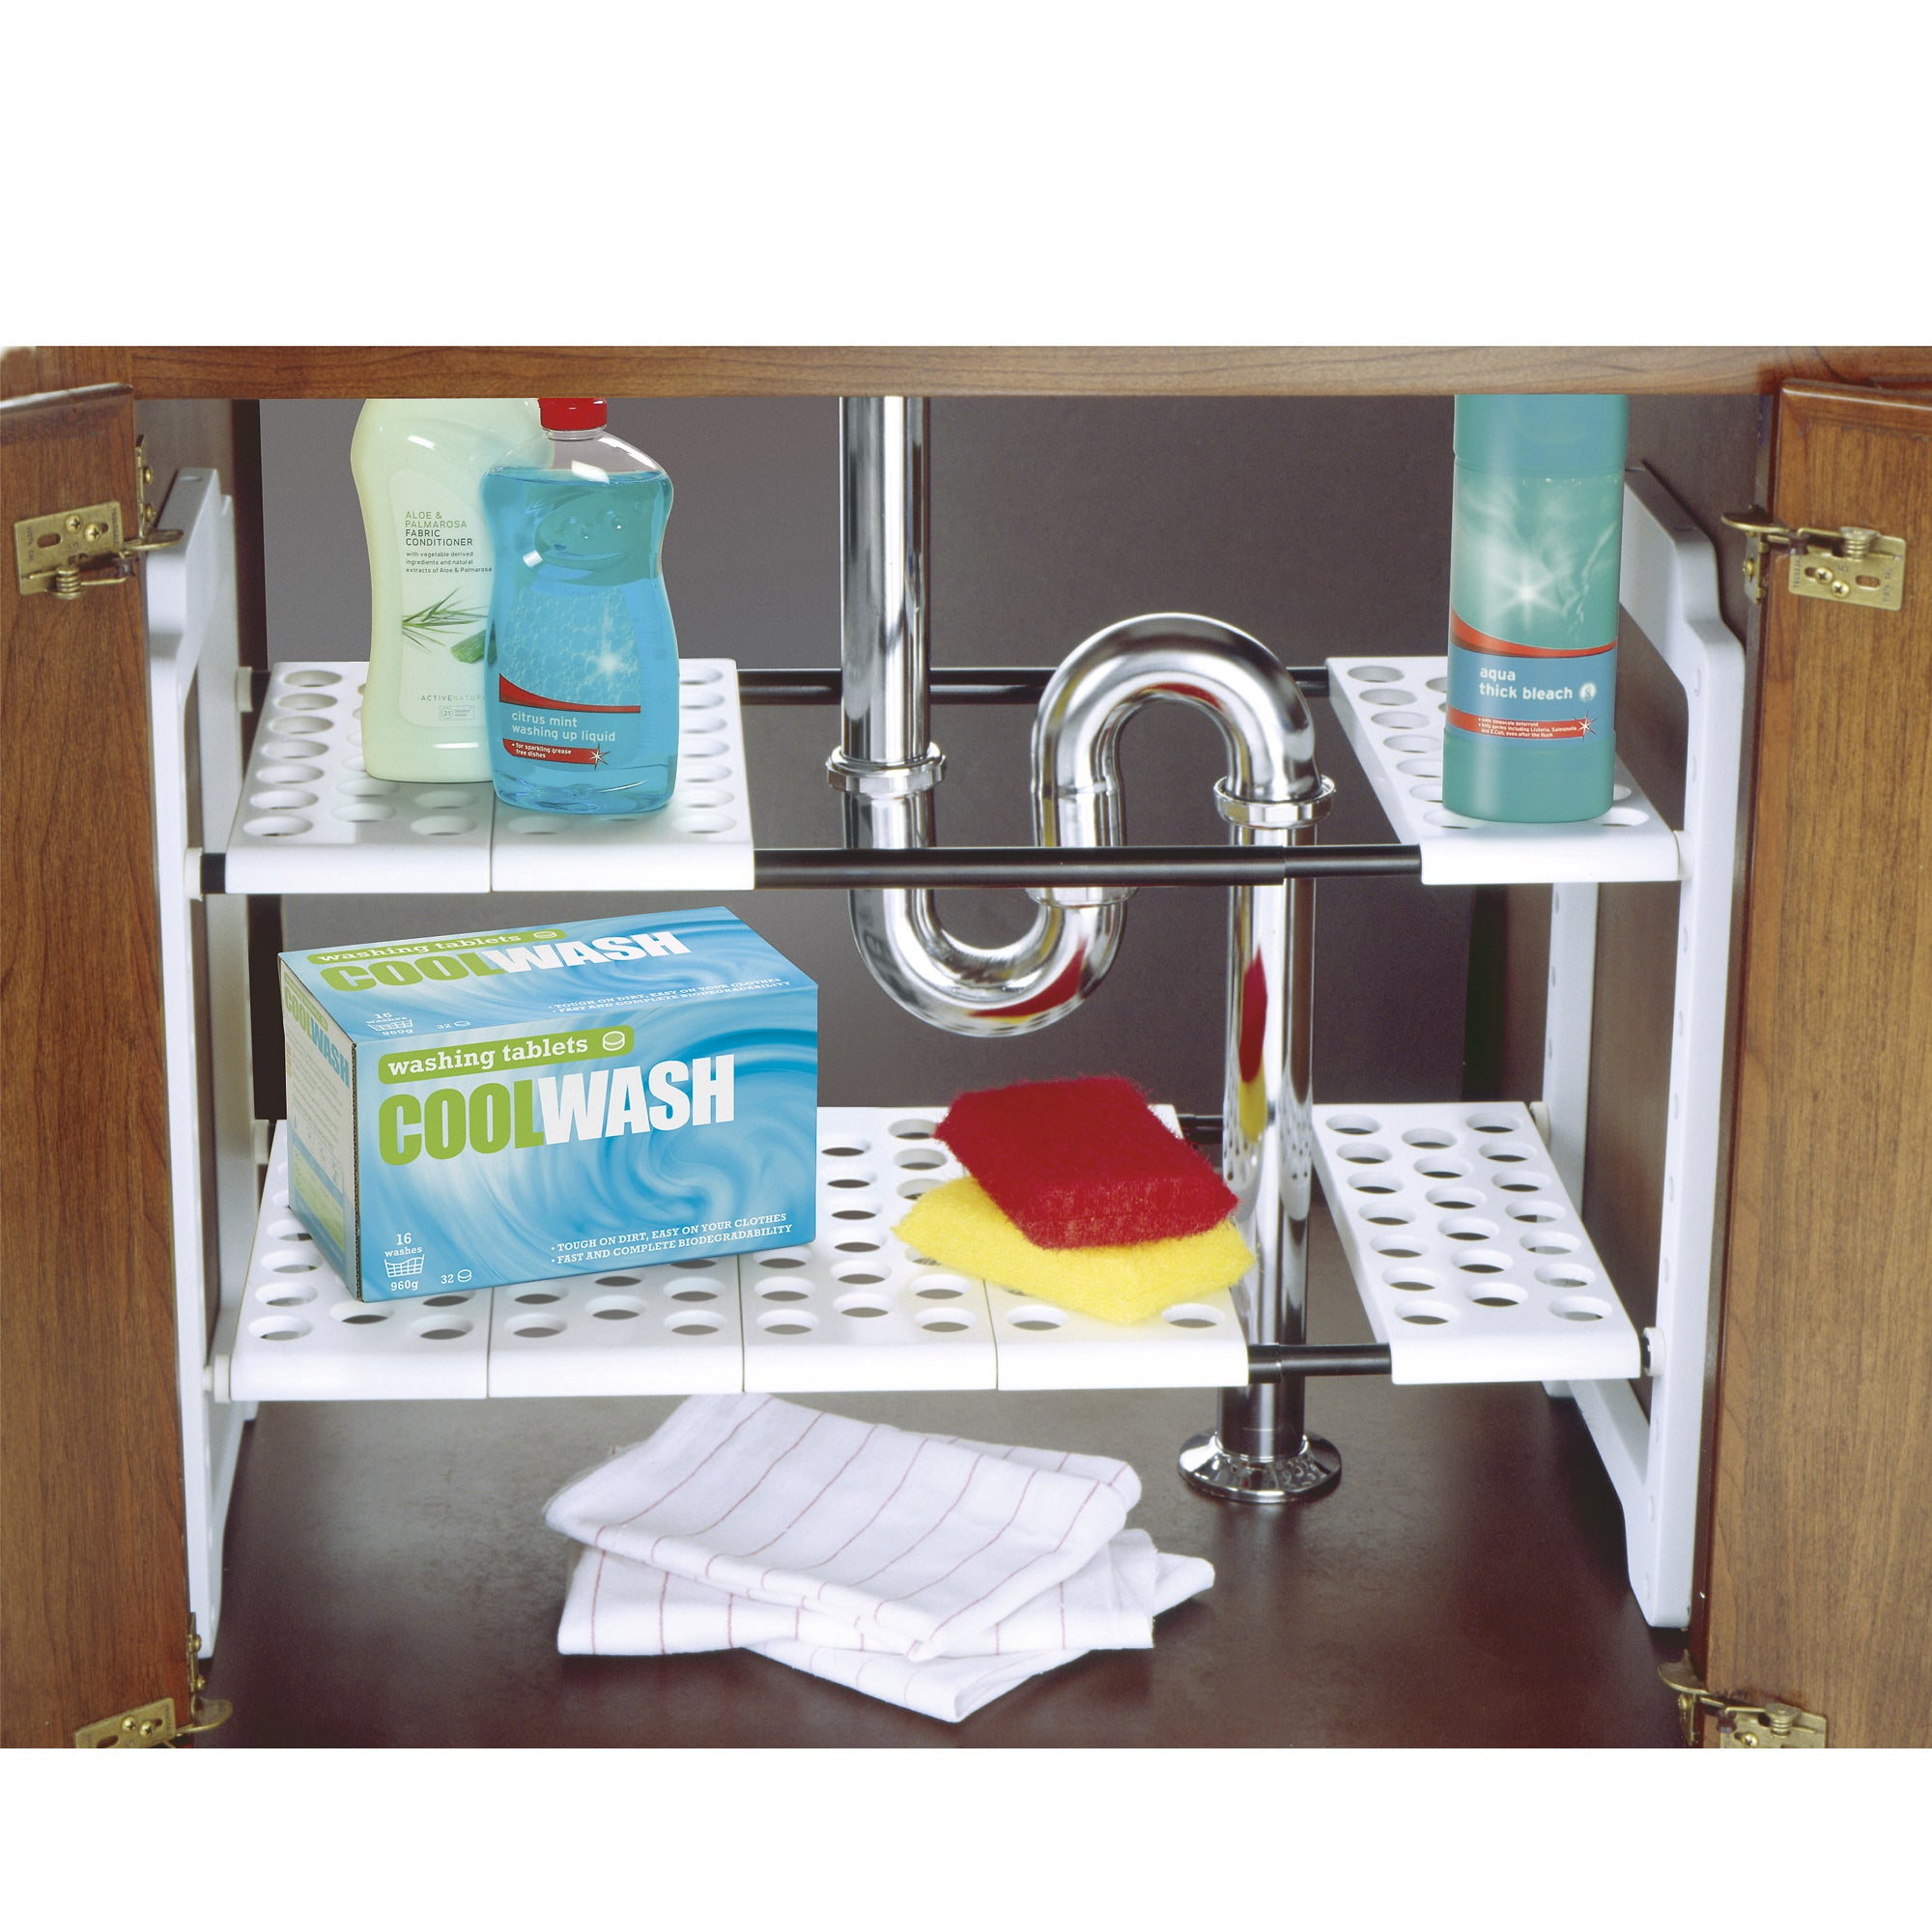 Under Sink Storage Shop For Cheap Beds And Save Online